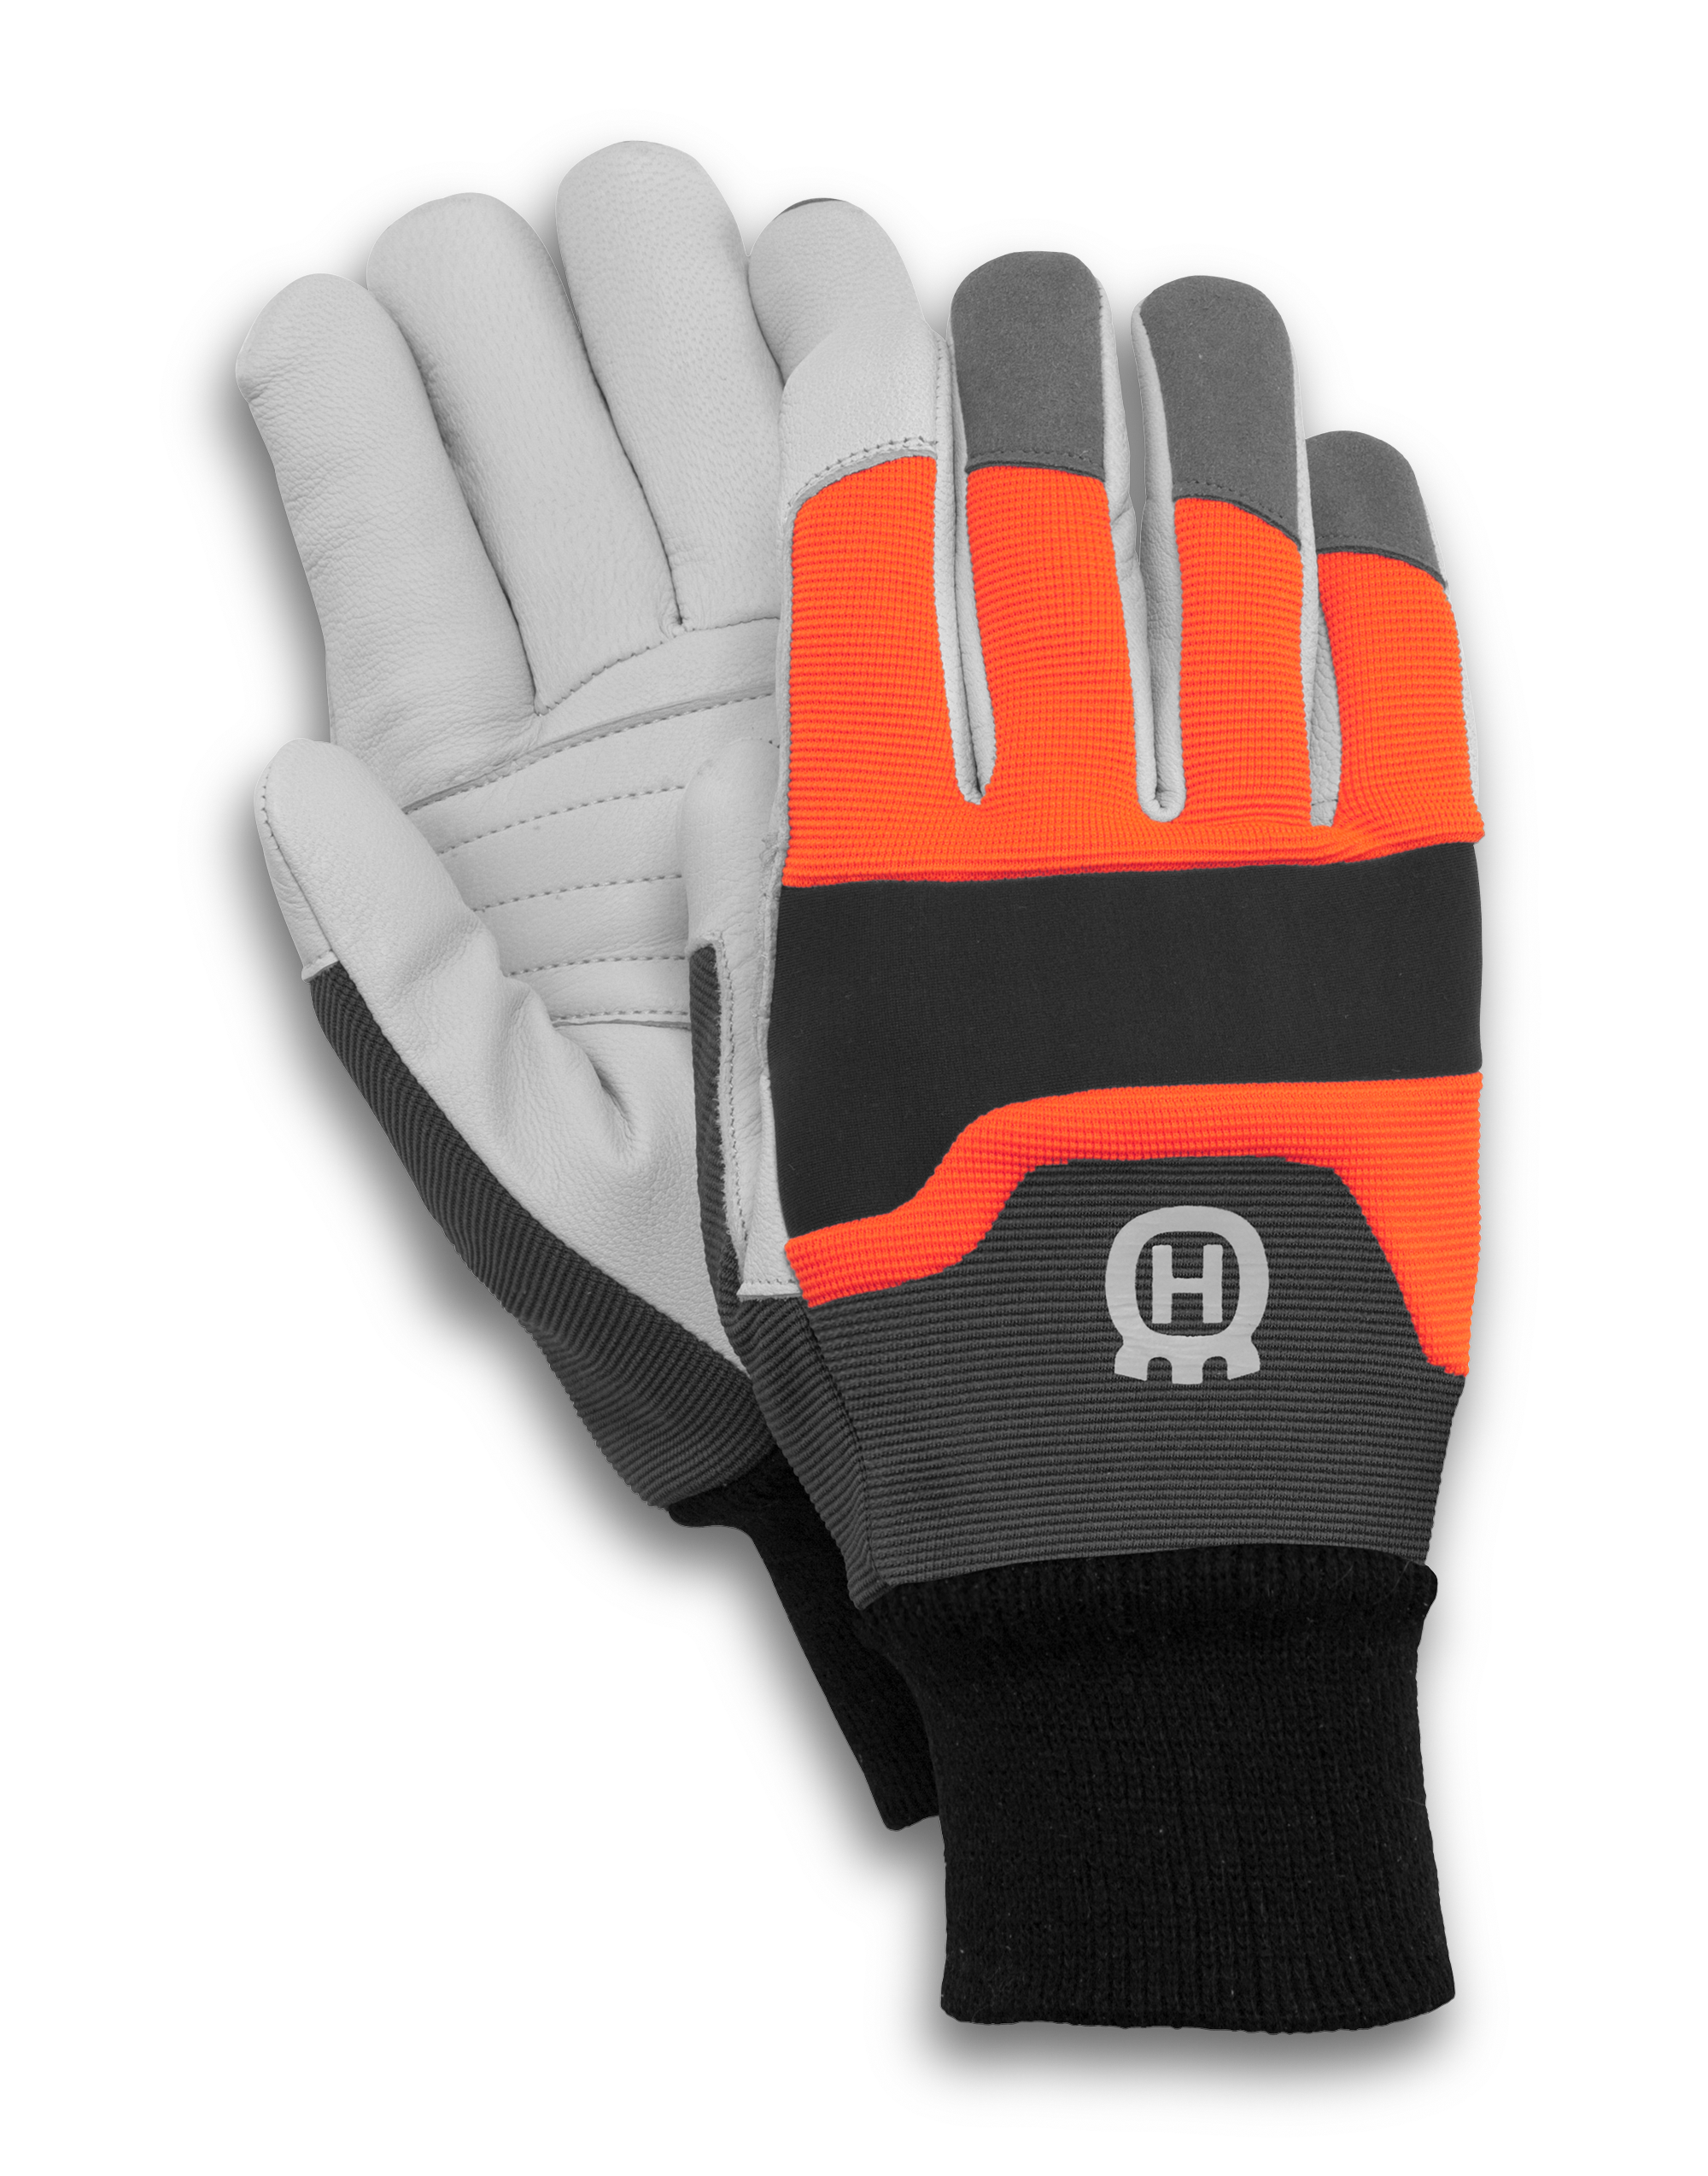 Transparent gloves protective. Husqvarna functional chainsaw protection